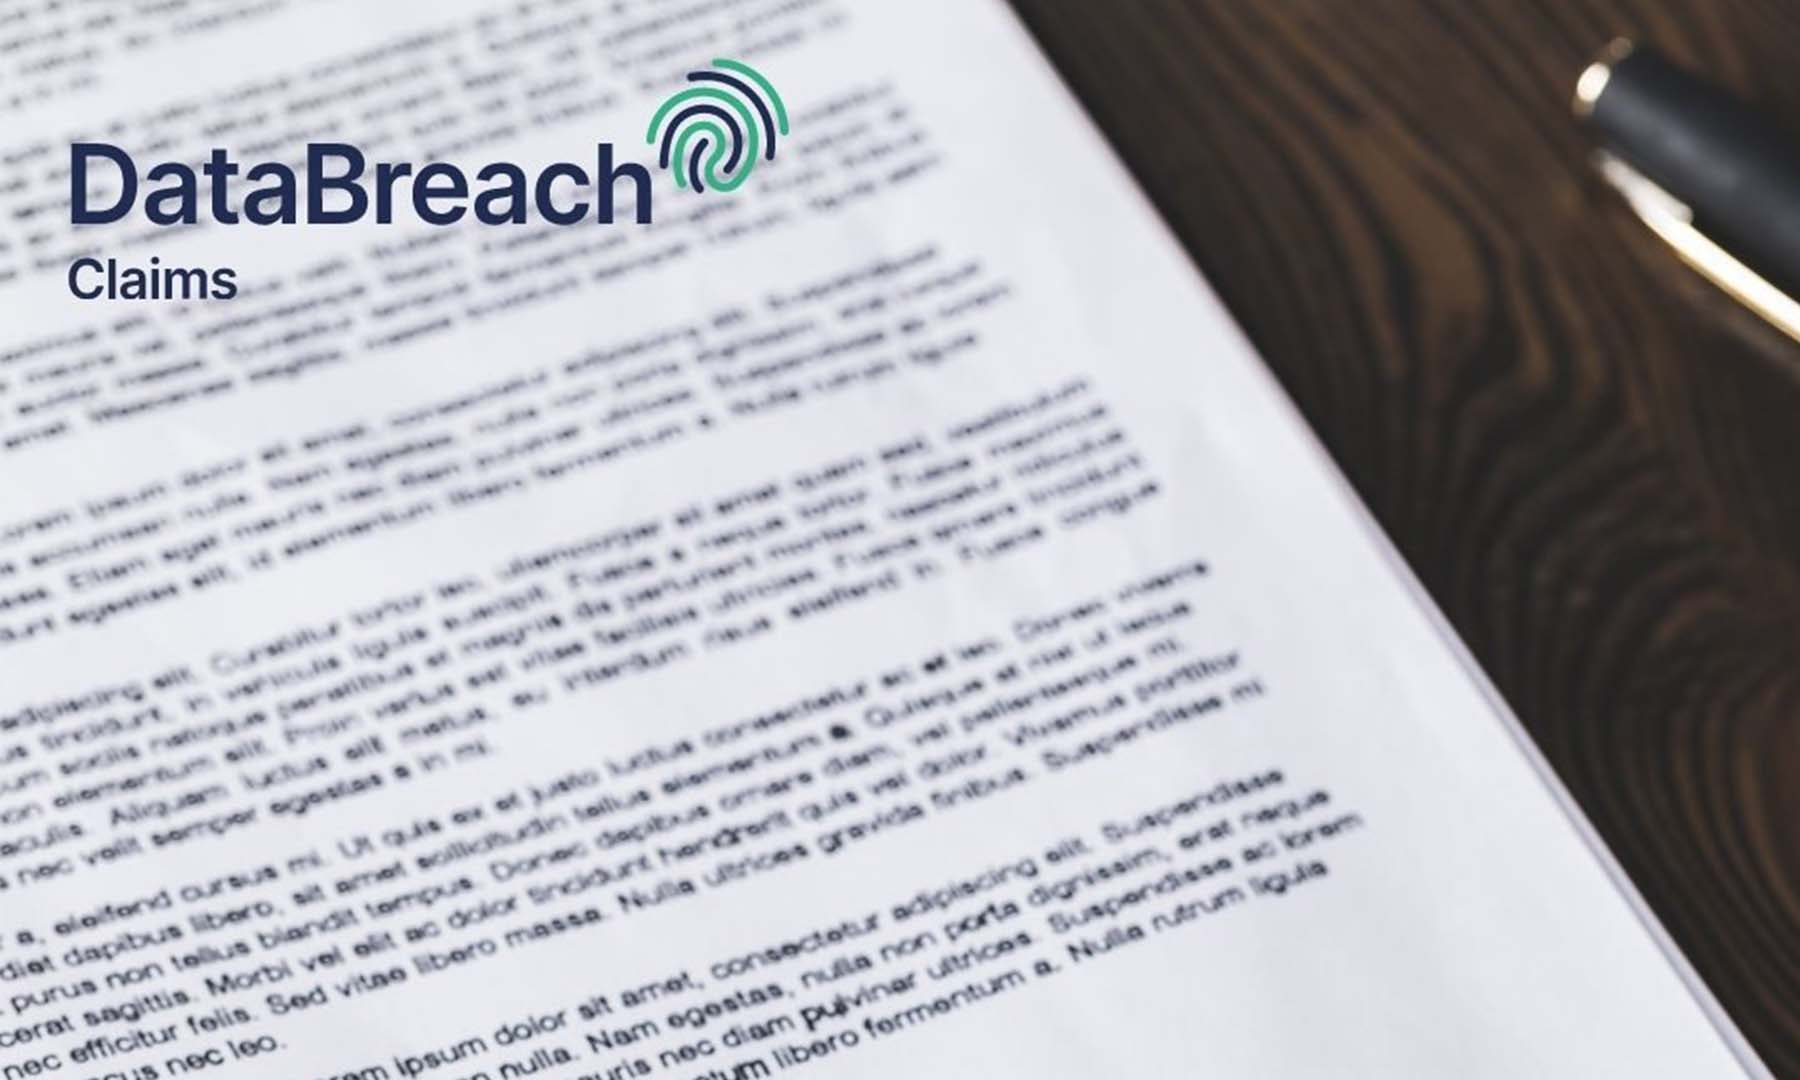 What can you claim data breach for?